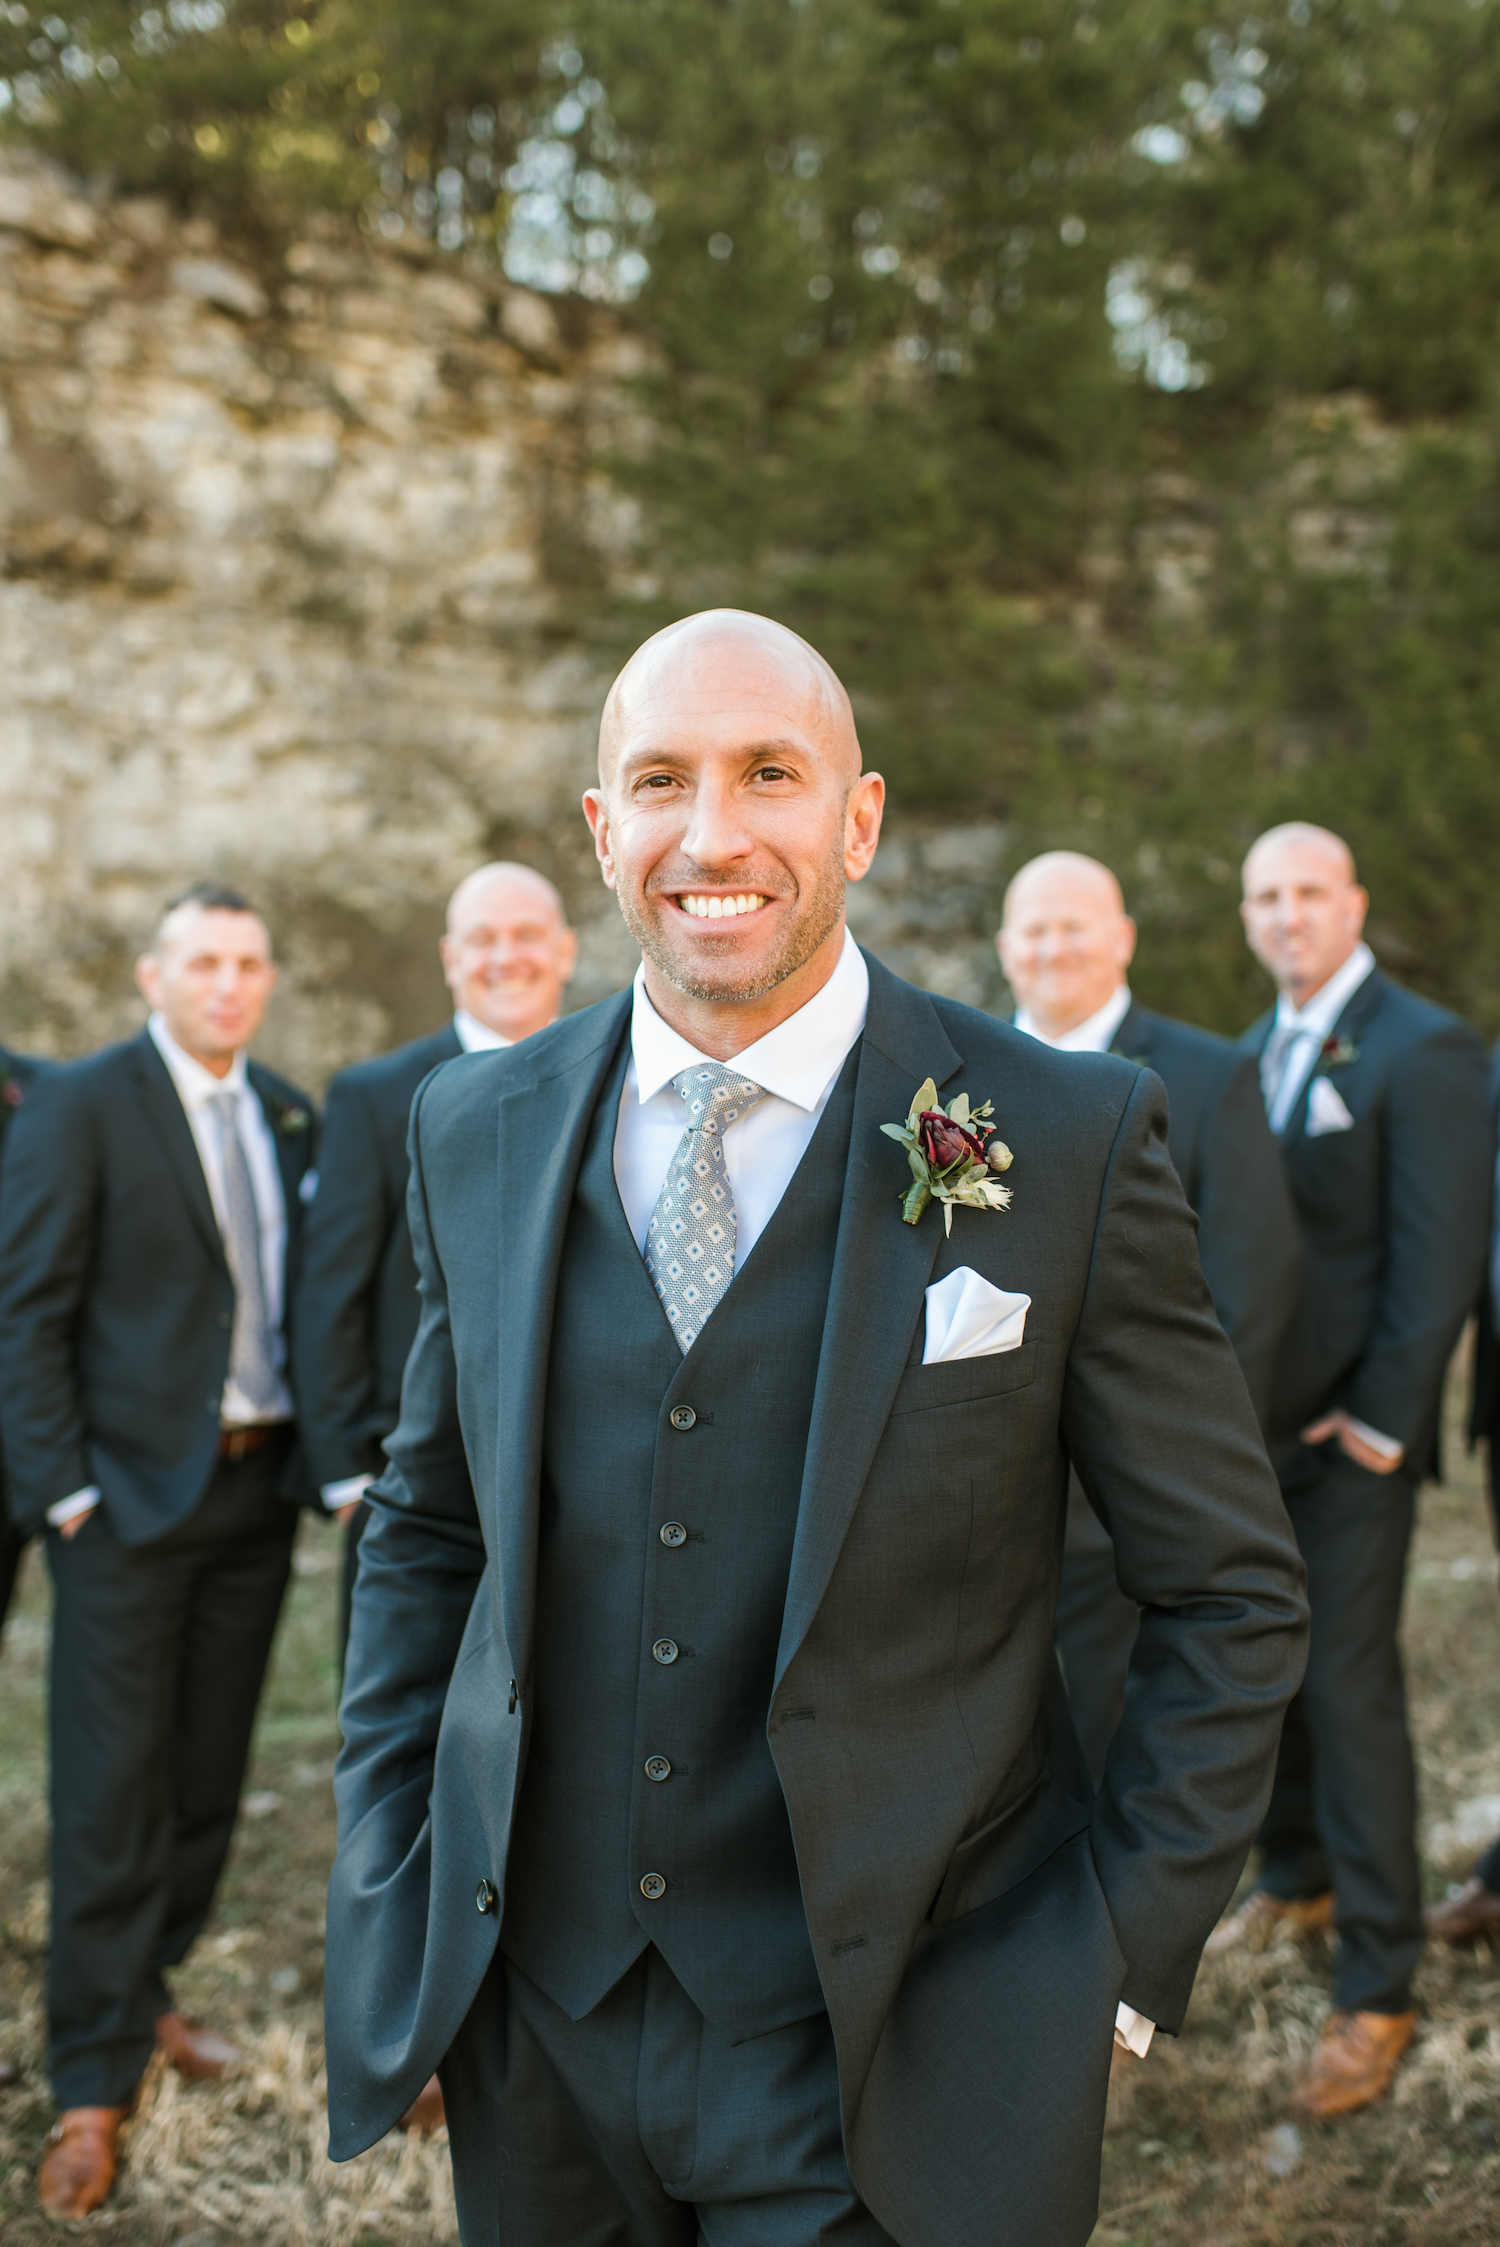 Grooms Portrait by Shelby Rae Photographs on Nashville Bride Guide